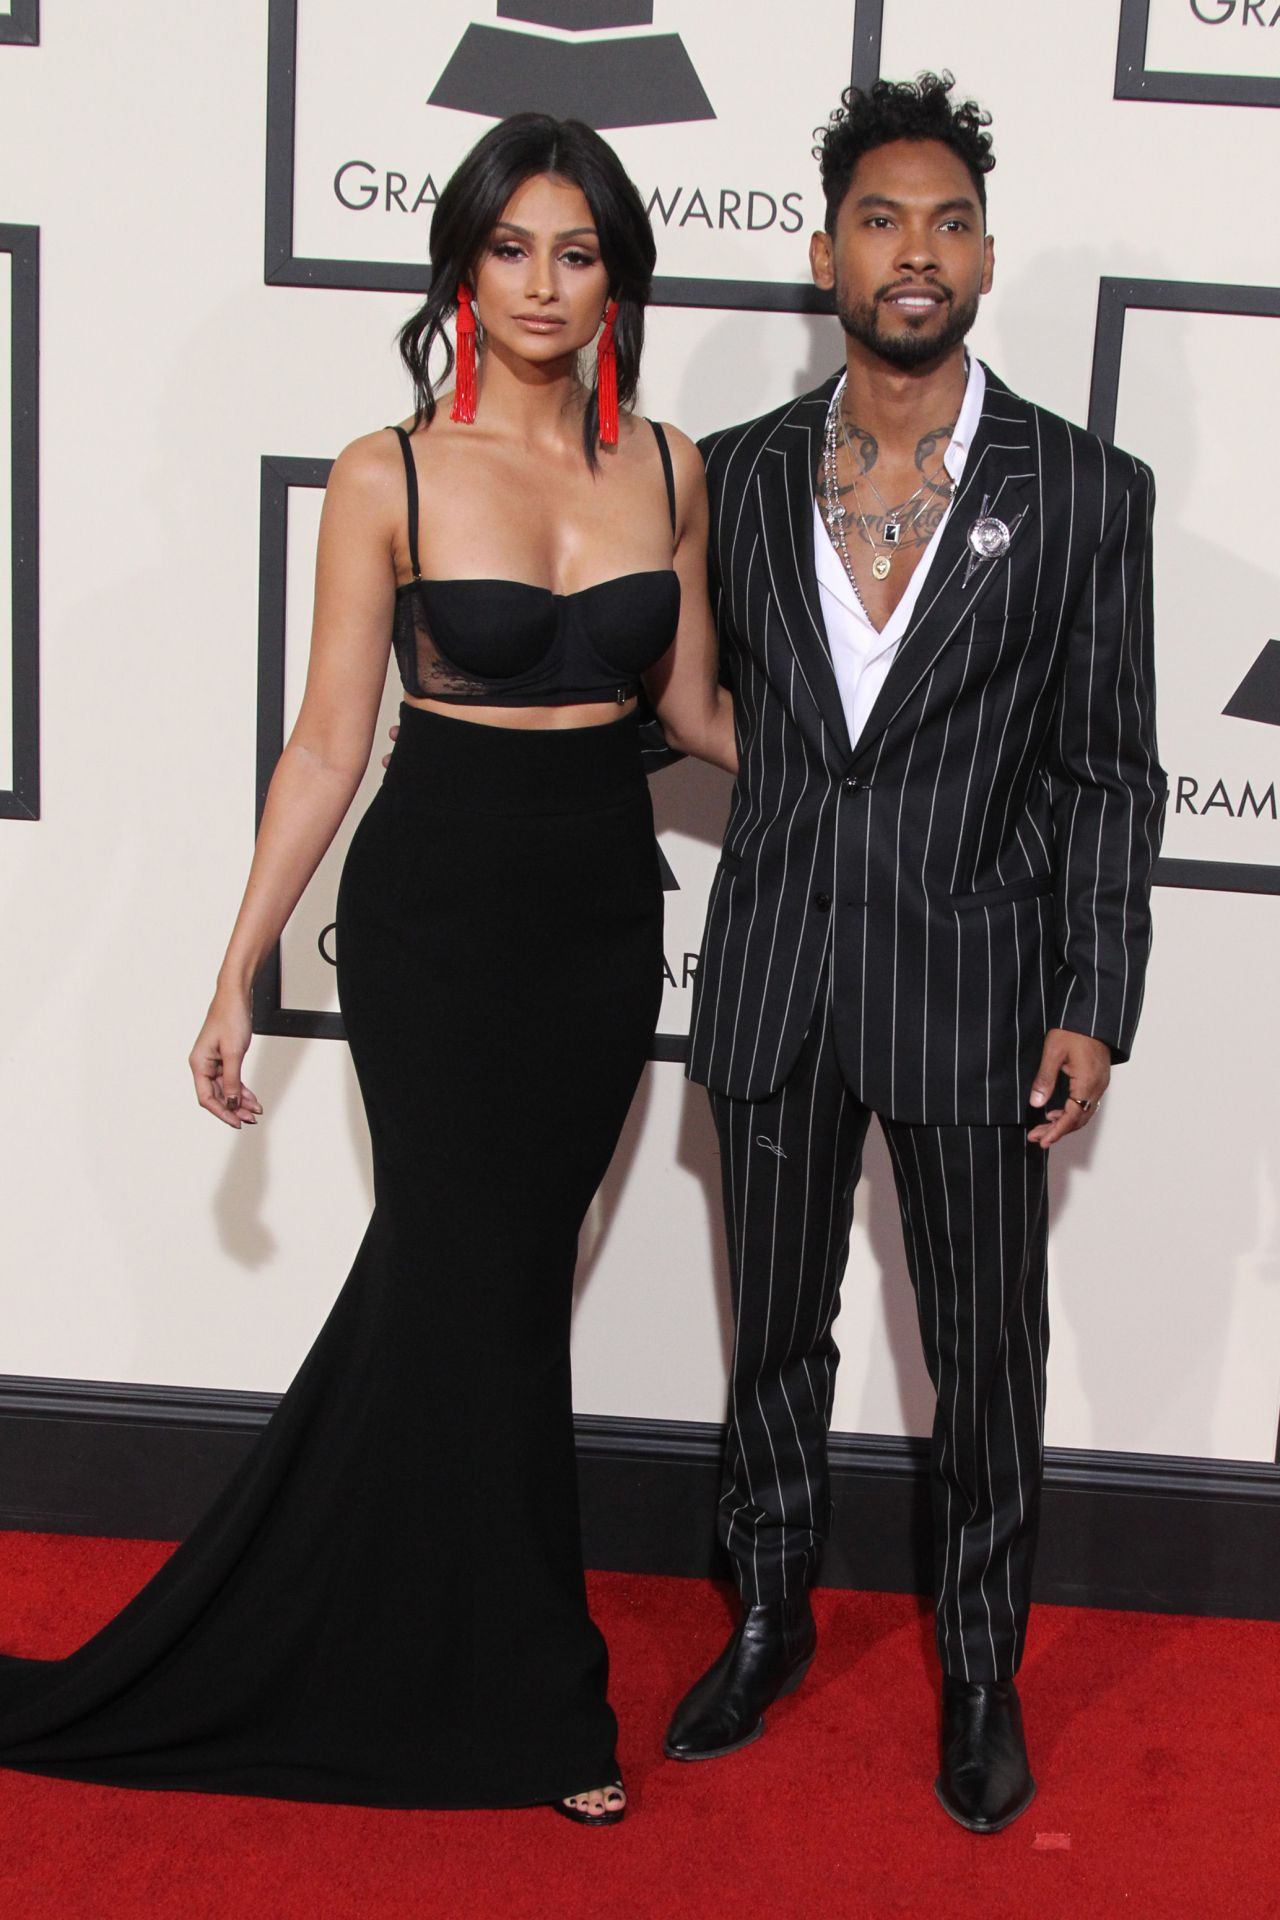 nazanin-mandi-2016-grammy-awards-in-los-angeles-ca-1-1